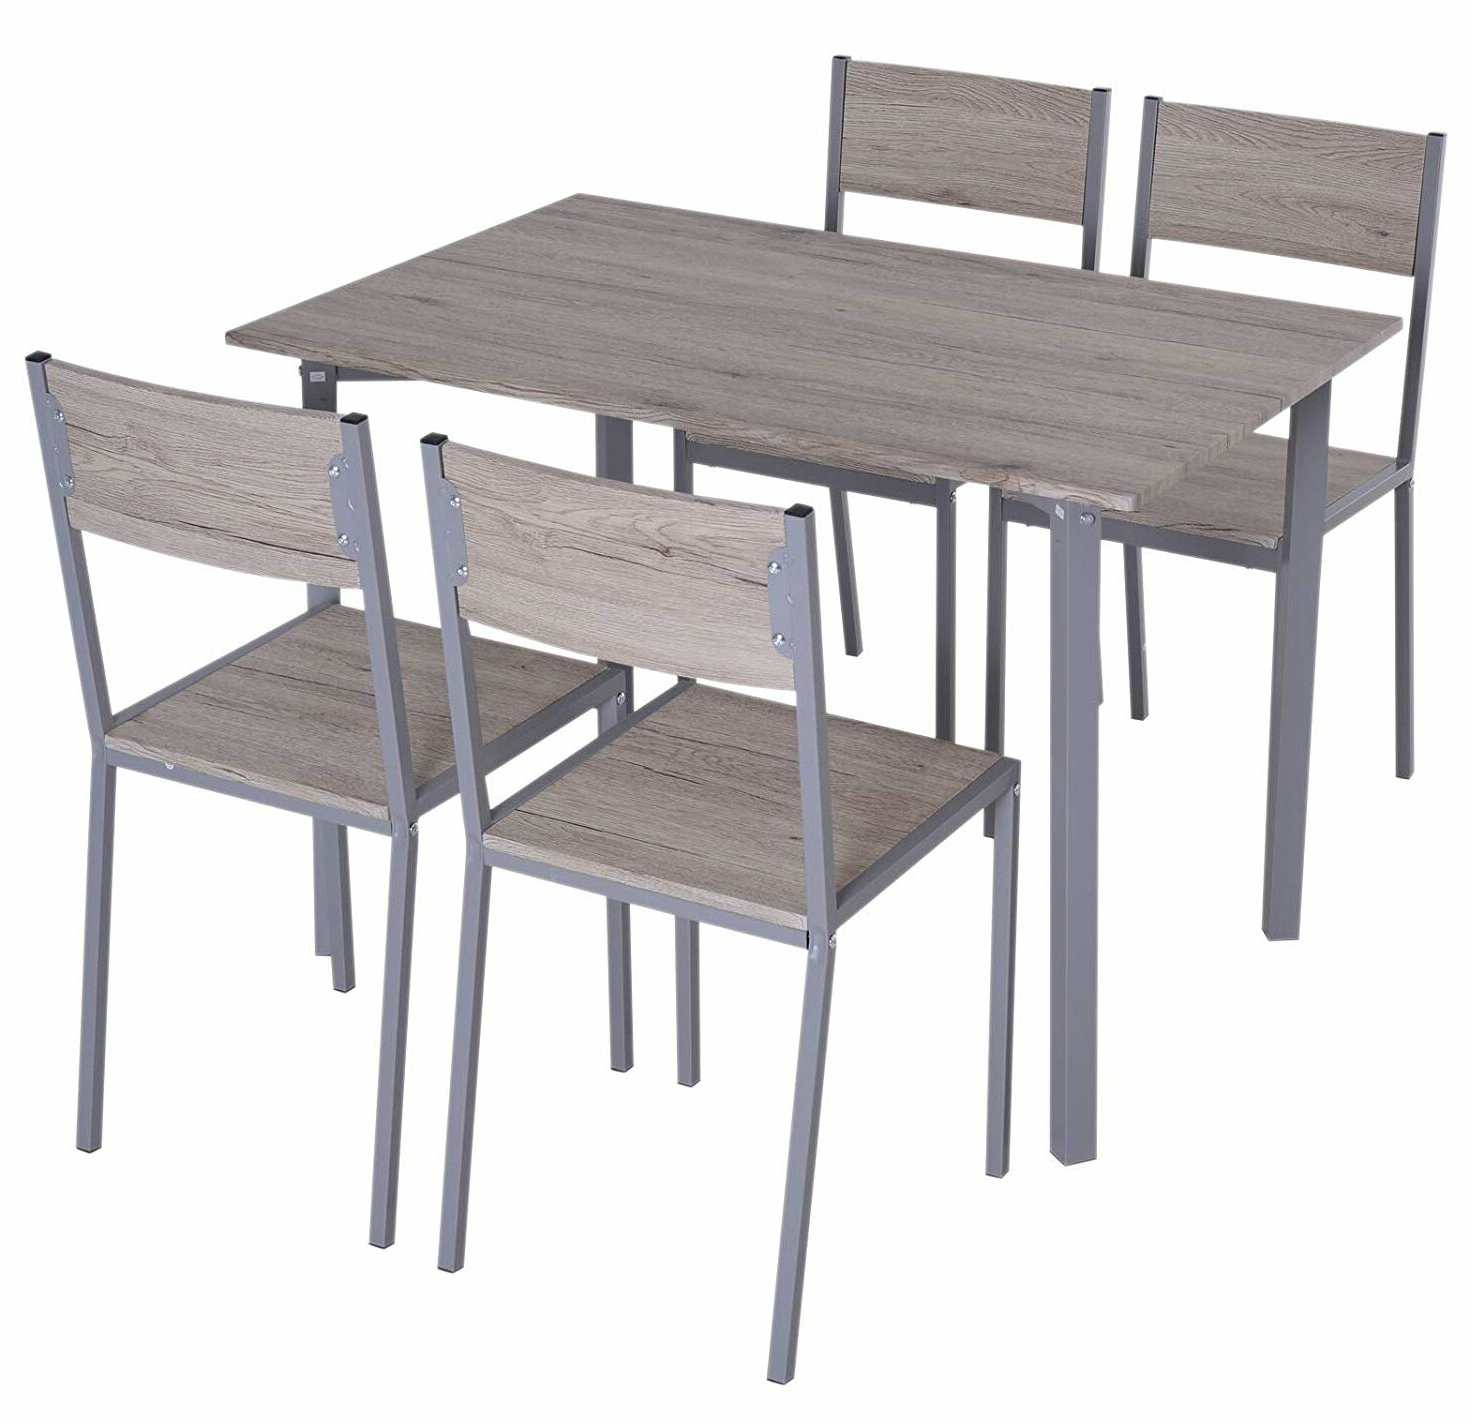 Wayfair Within Most Current Emmeline 5 Piece Breakfast Nook Dining Sets (View 23 of 25)